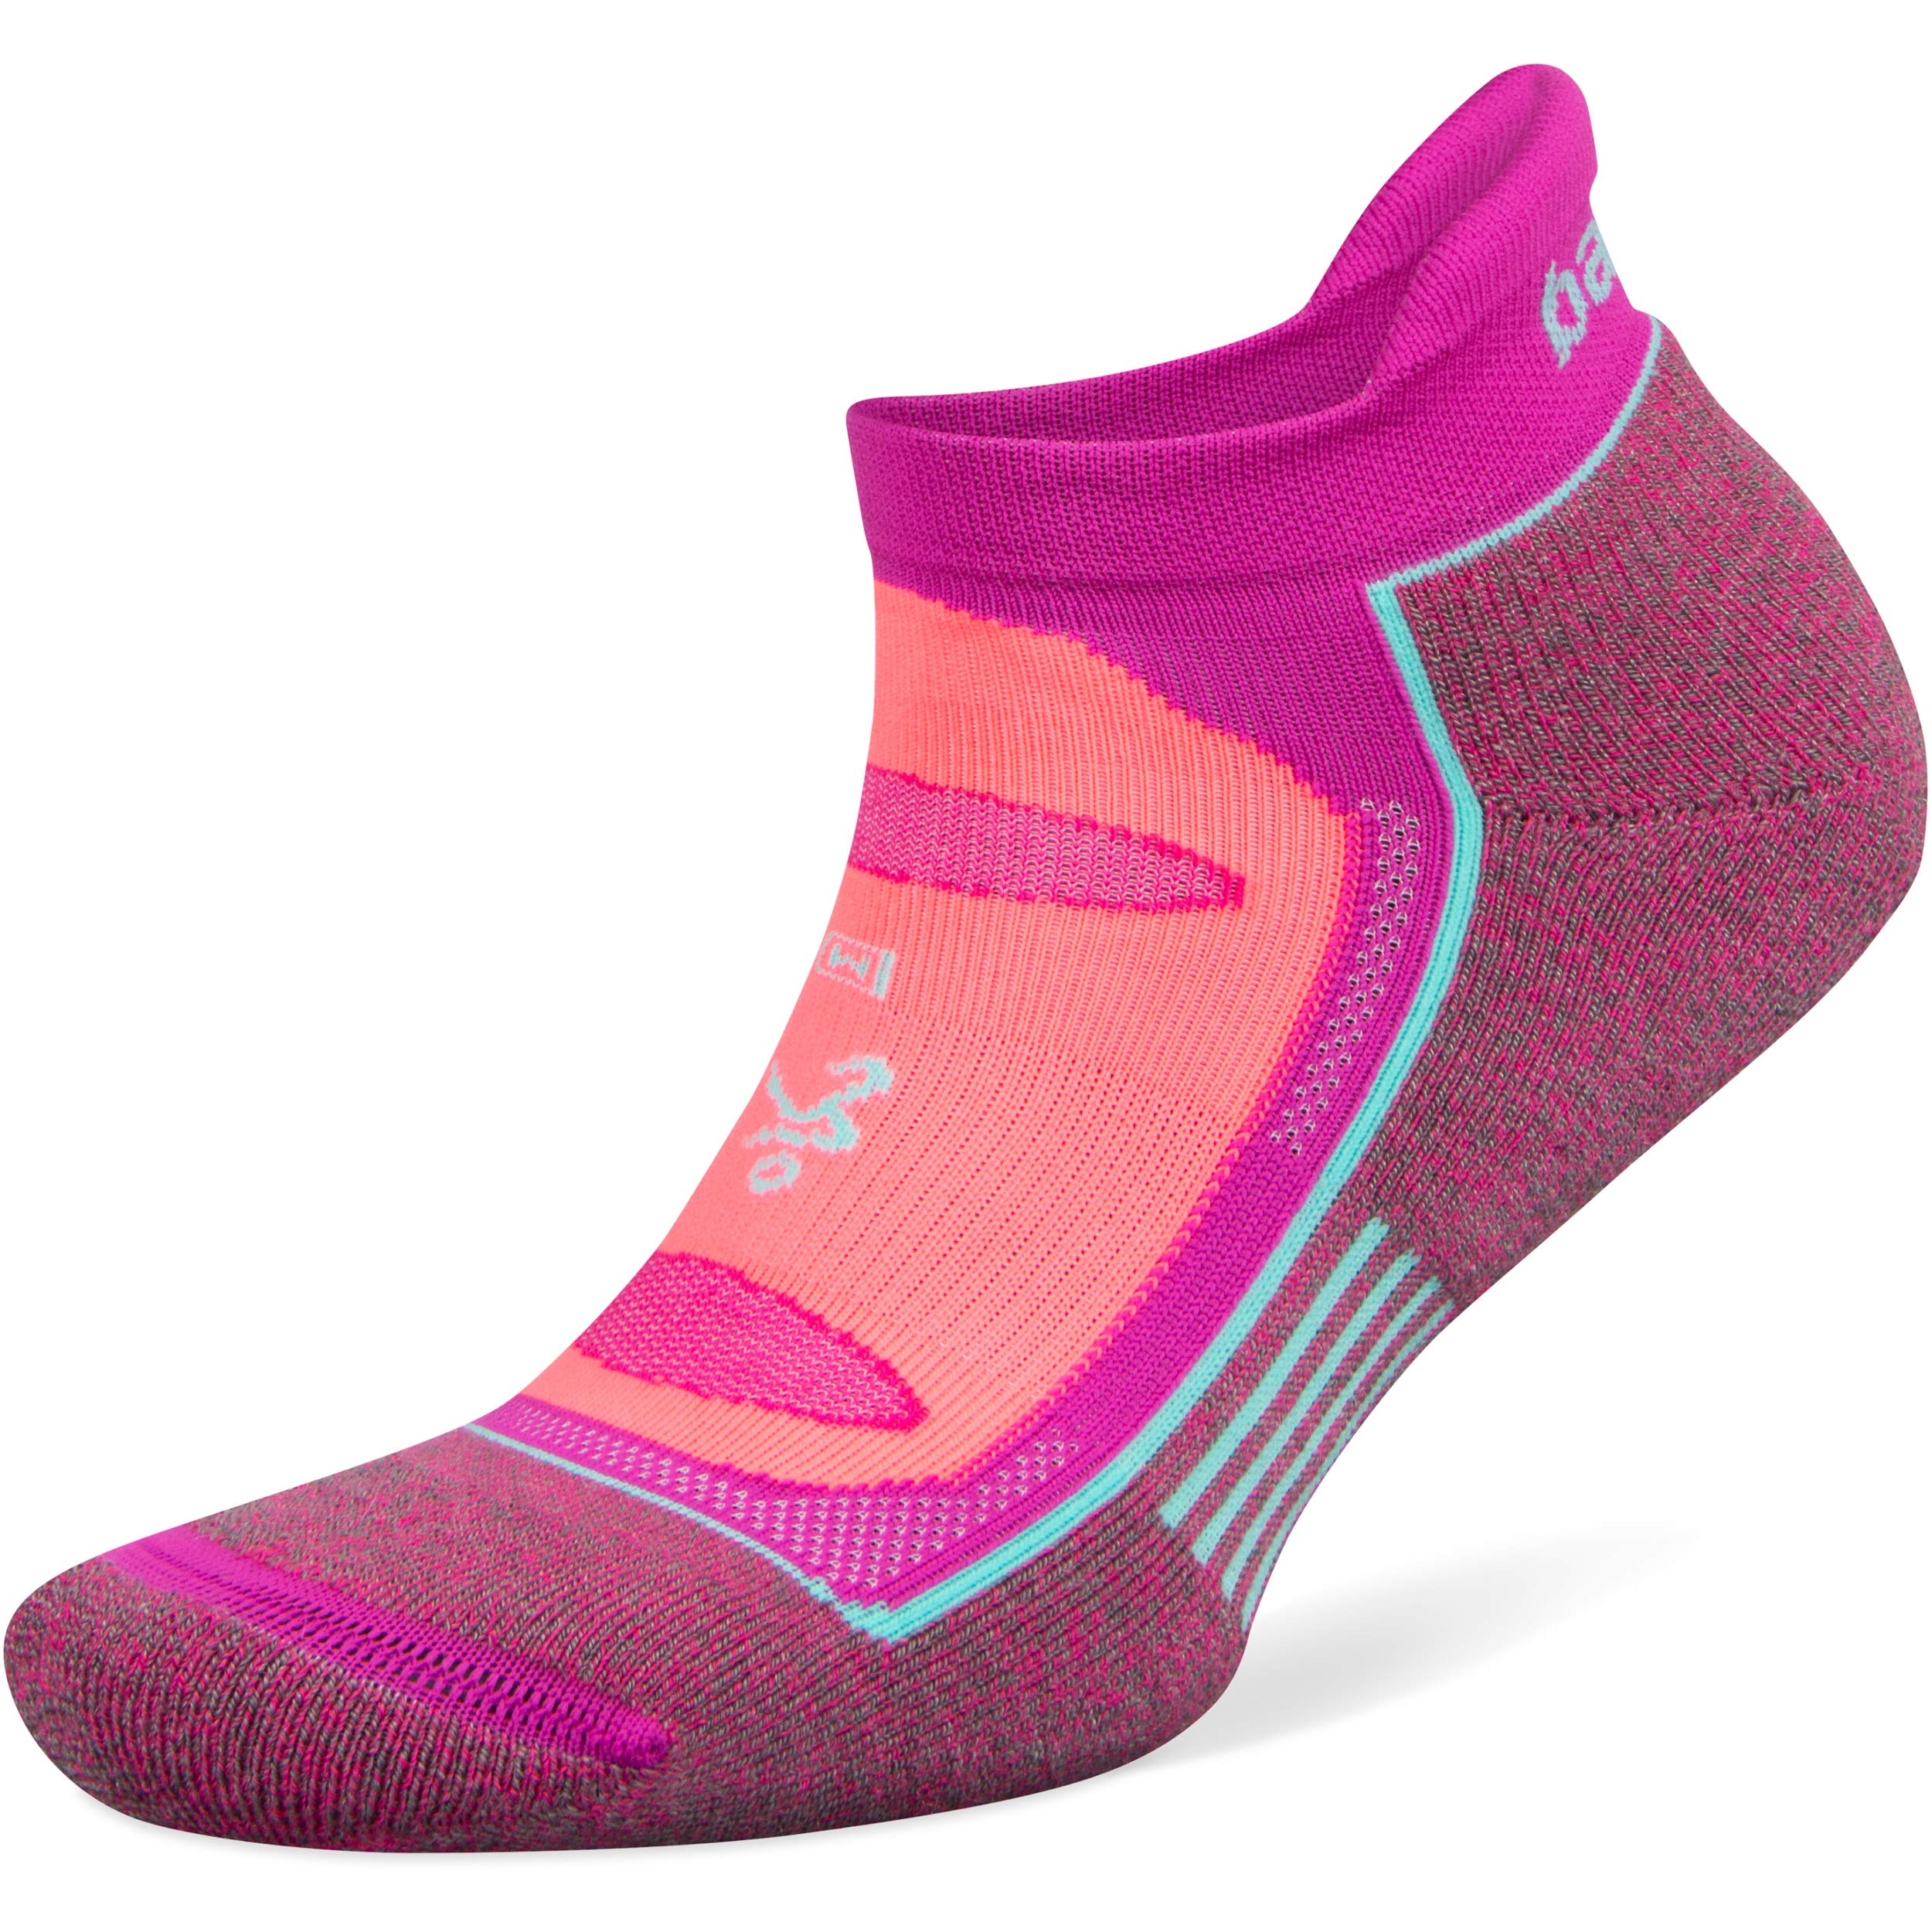 Balega Blister Resist No Show Socks for Men and Women (1 Pair), Lilac Rose/Electric Pink, Large by Balega